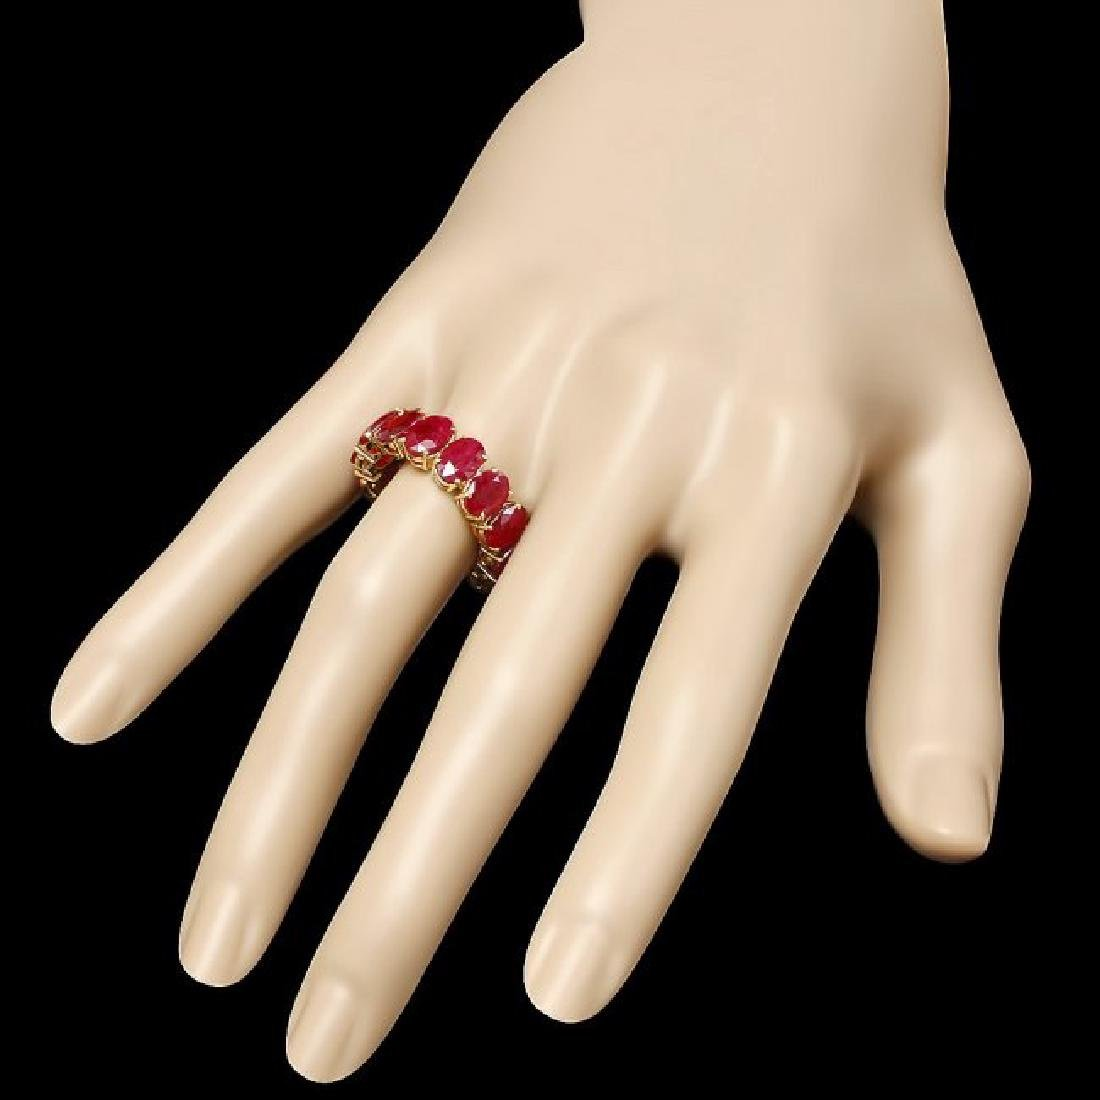 14k Yellow Gold 11.40ct Ruby Ring - 3